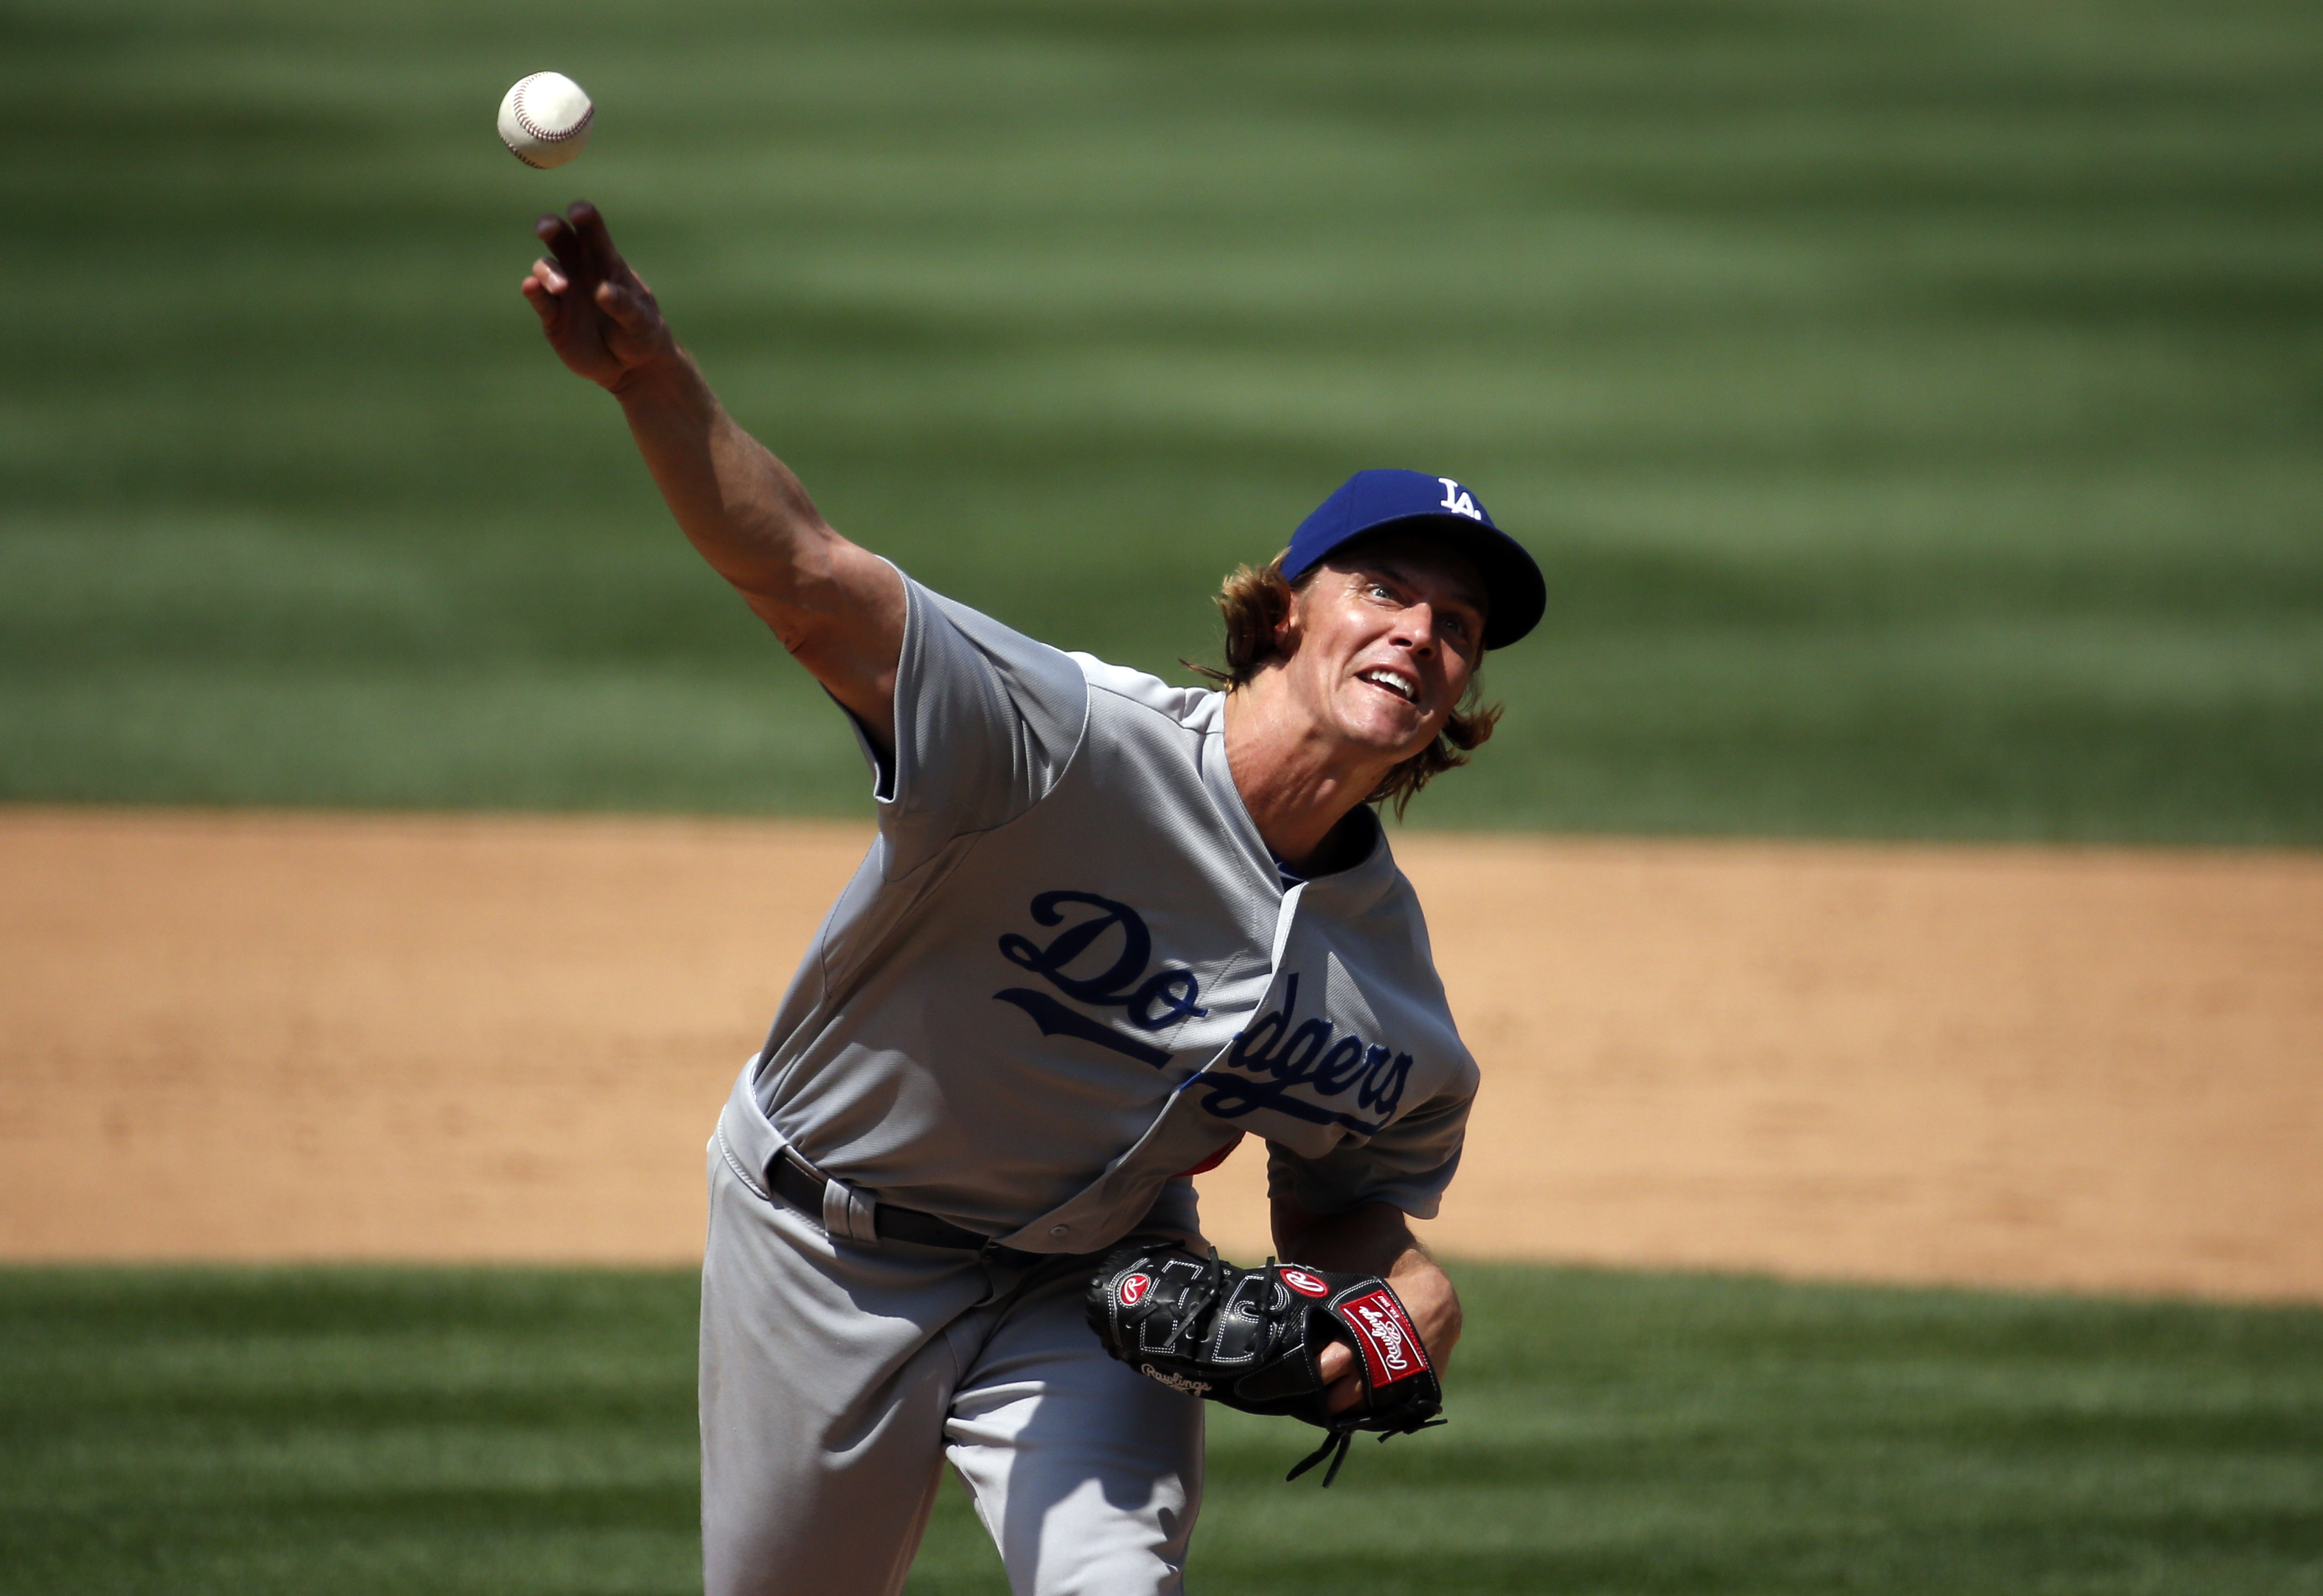 Los Angeles Dodgers starting pitcher Zack Greinke throws during the sixth inning of a baseball game against the Washington Nationals at Nationals Park, Sunday, July 19, 2015, in Washington. The Dodgers won 5-0. (AP Photo/Alex Brandon)